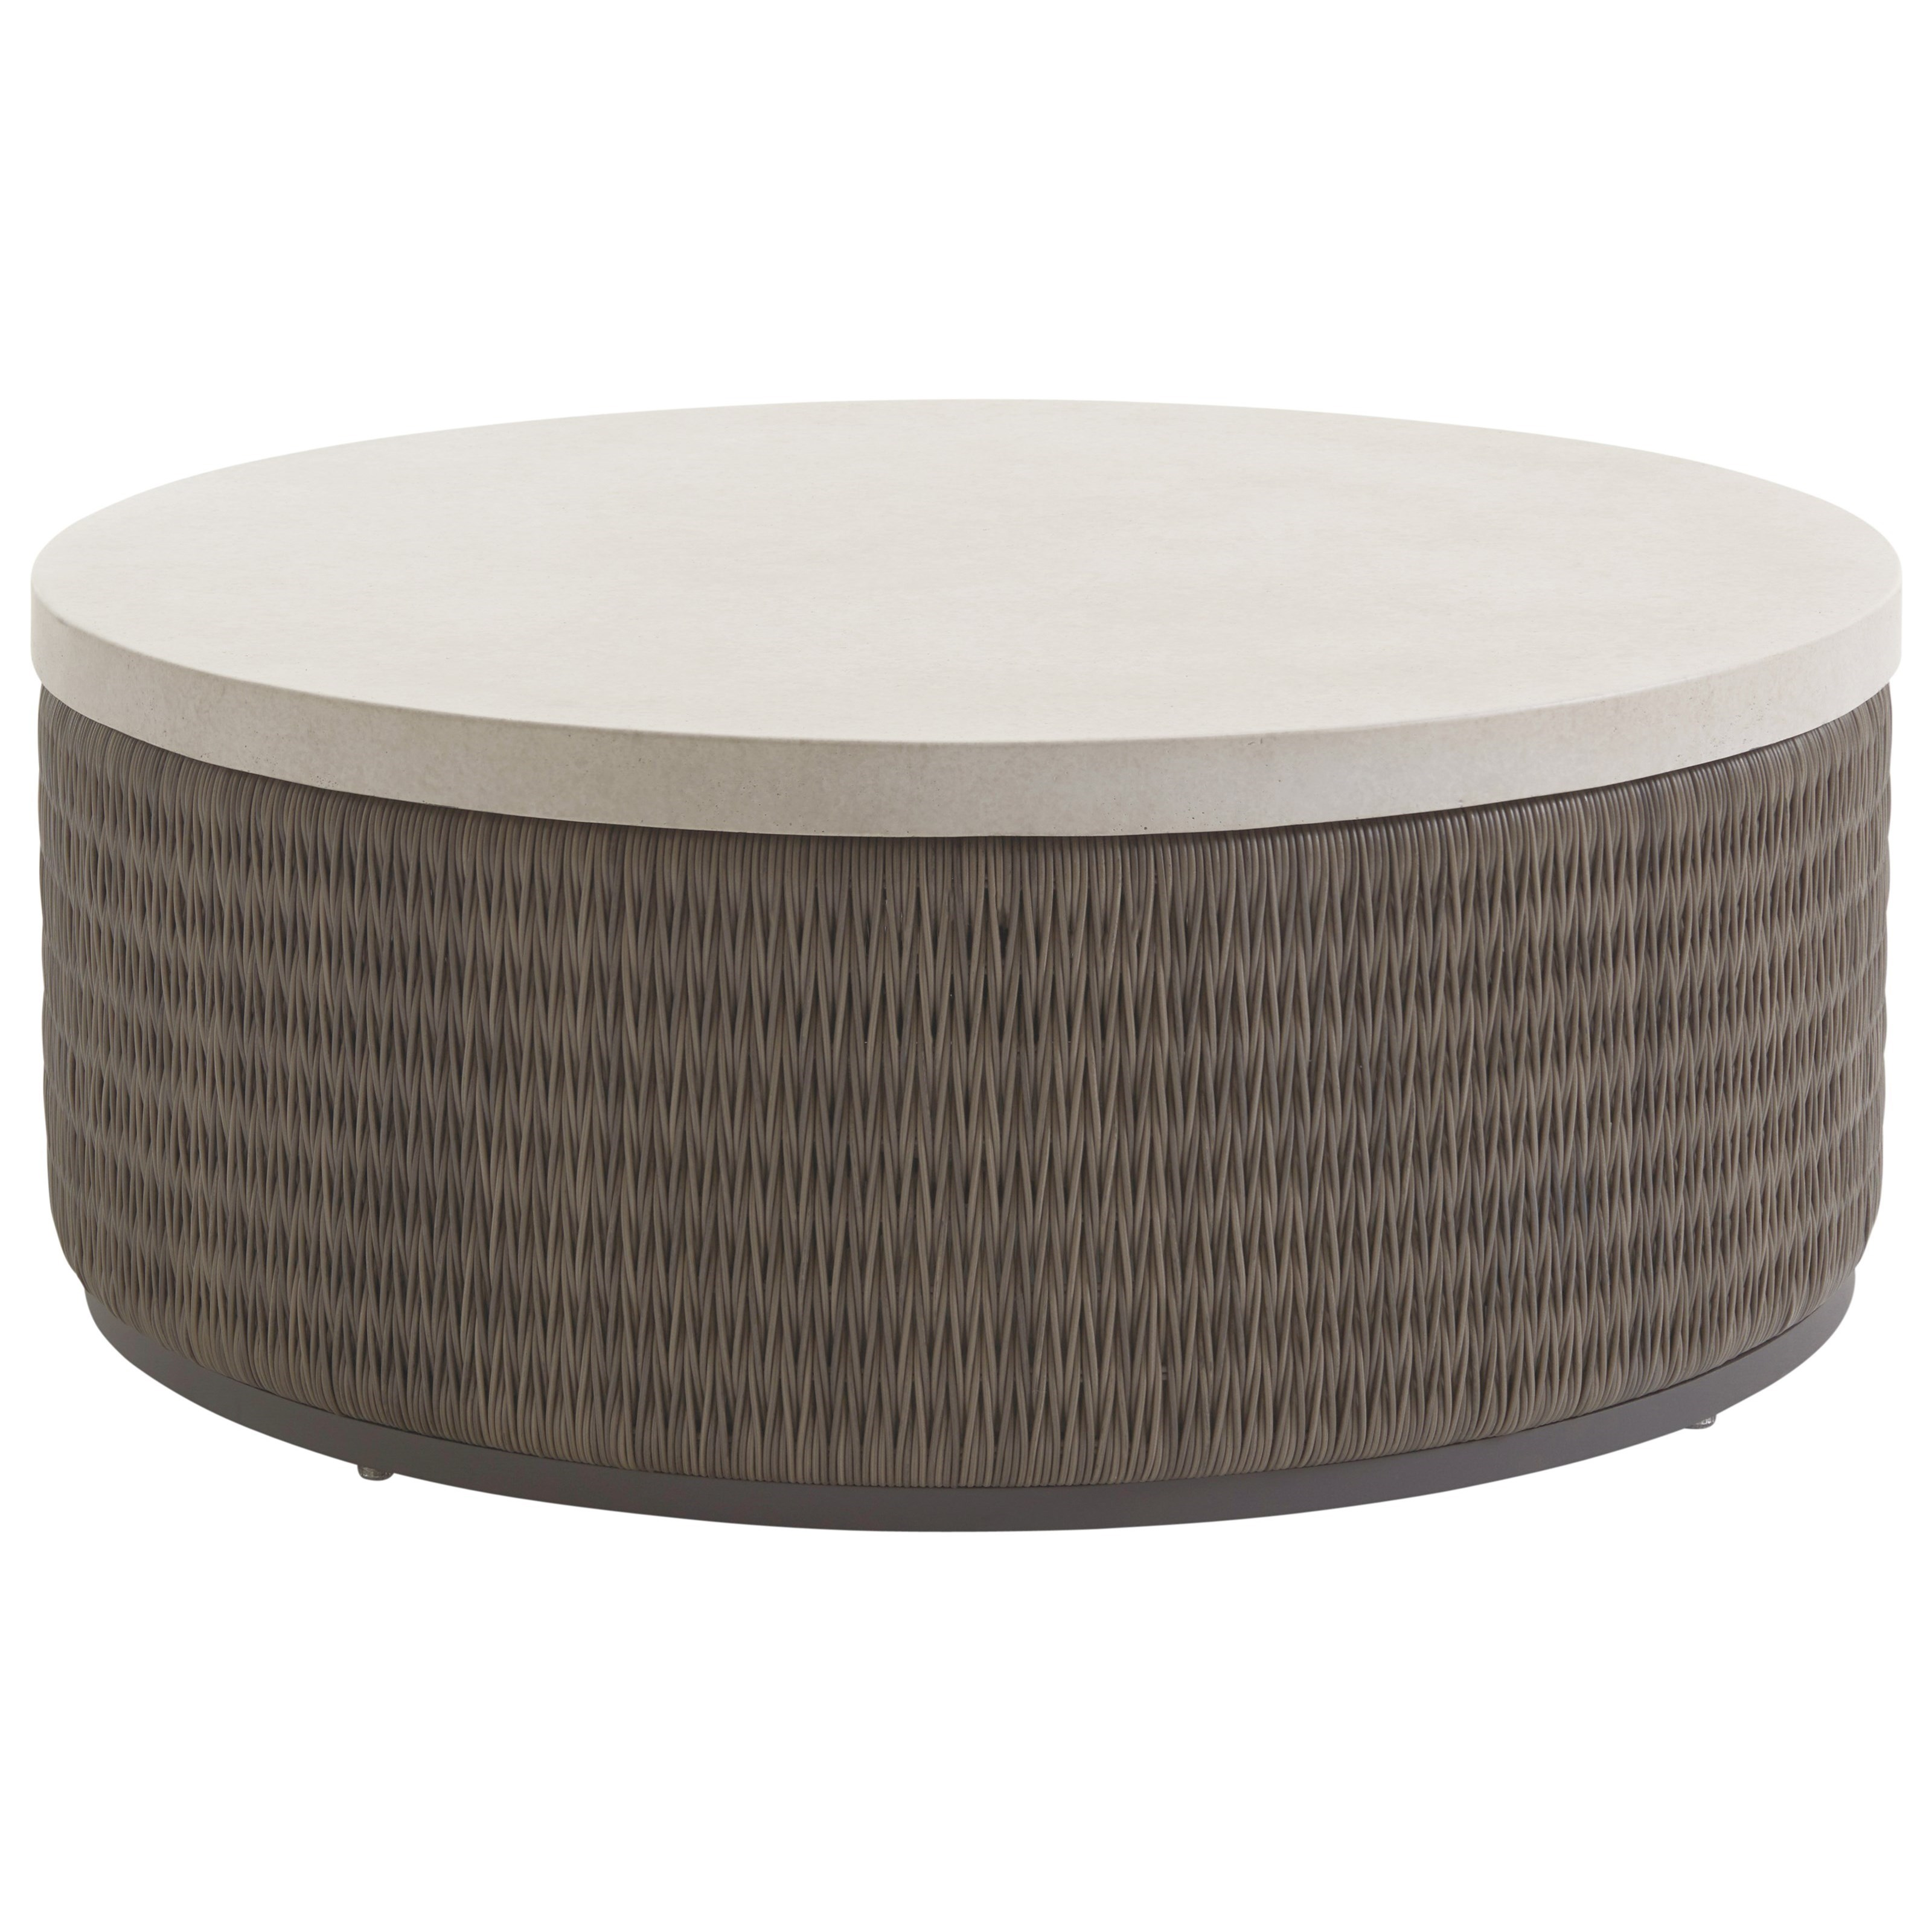 Cypress Point Ocean Terrace Round Cocktail Table w/ Weatherstone Top by Tommy Bahama Outdoor Living at Baer's Furniture